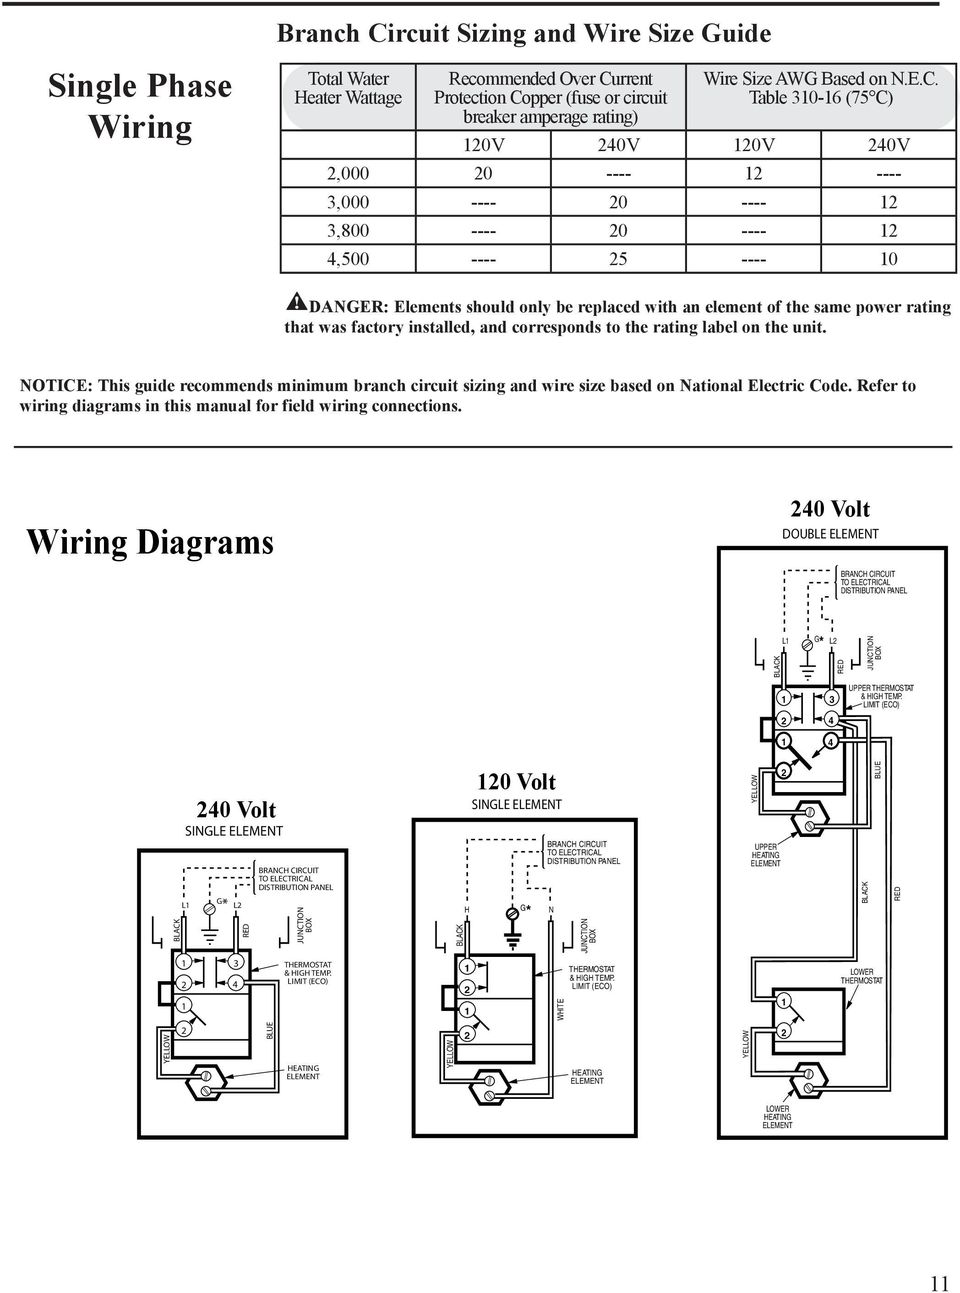 Use Care Manual Electric Water Heaters With Installation 120v Vs 240v Baseboard Heater Wiring Diagram Danger Elements Should Only Be Replaced An Element Of The Same Power Rating That